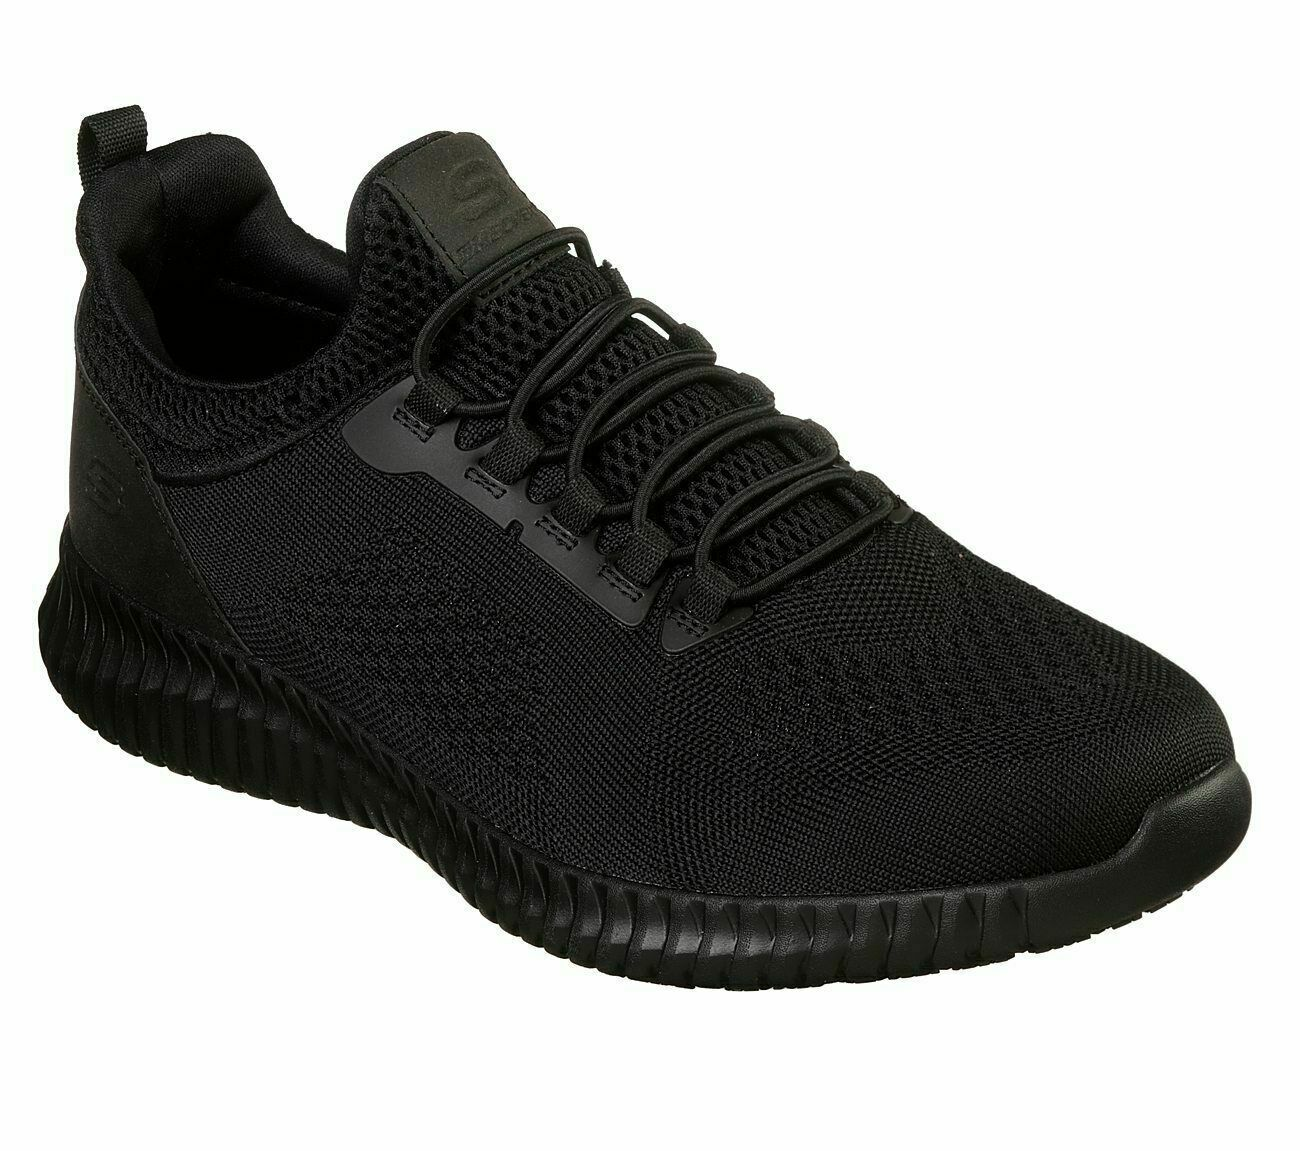 Slip Resistant Skechers Black Shoes Work Men's Comfort Slip on Memory Foam 77188